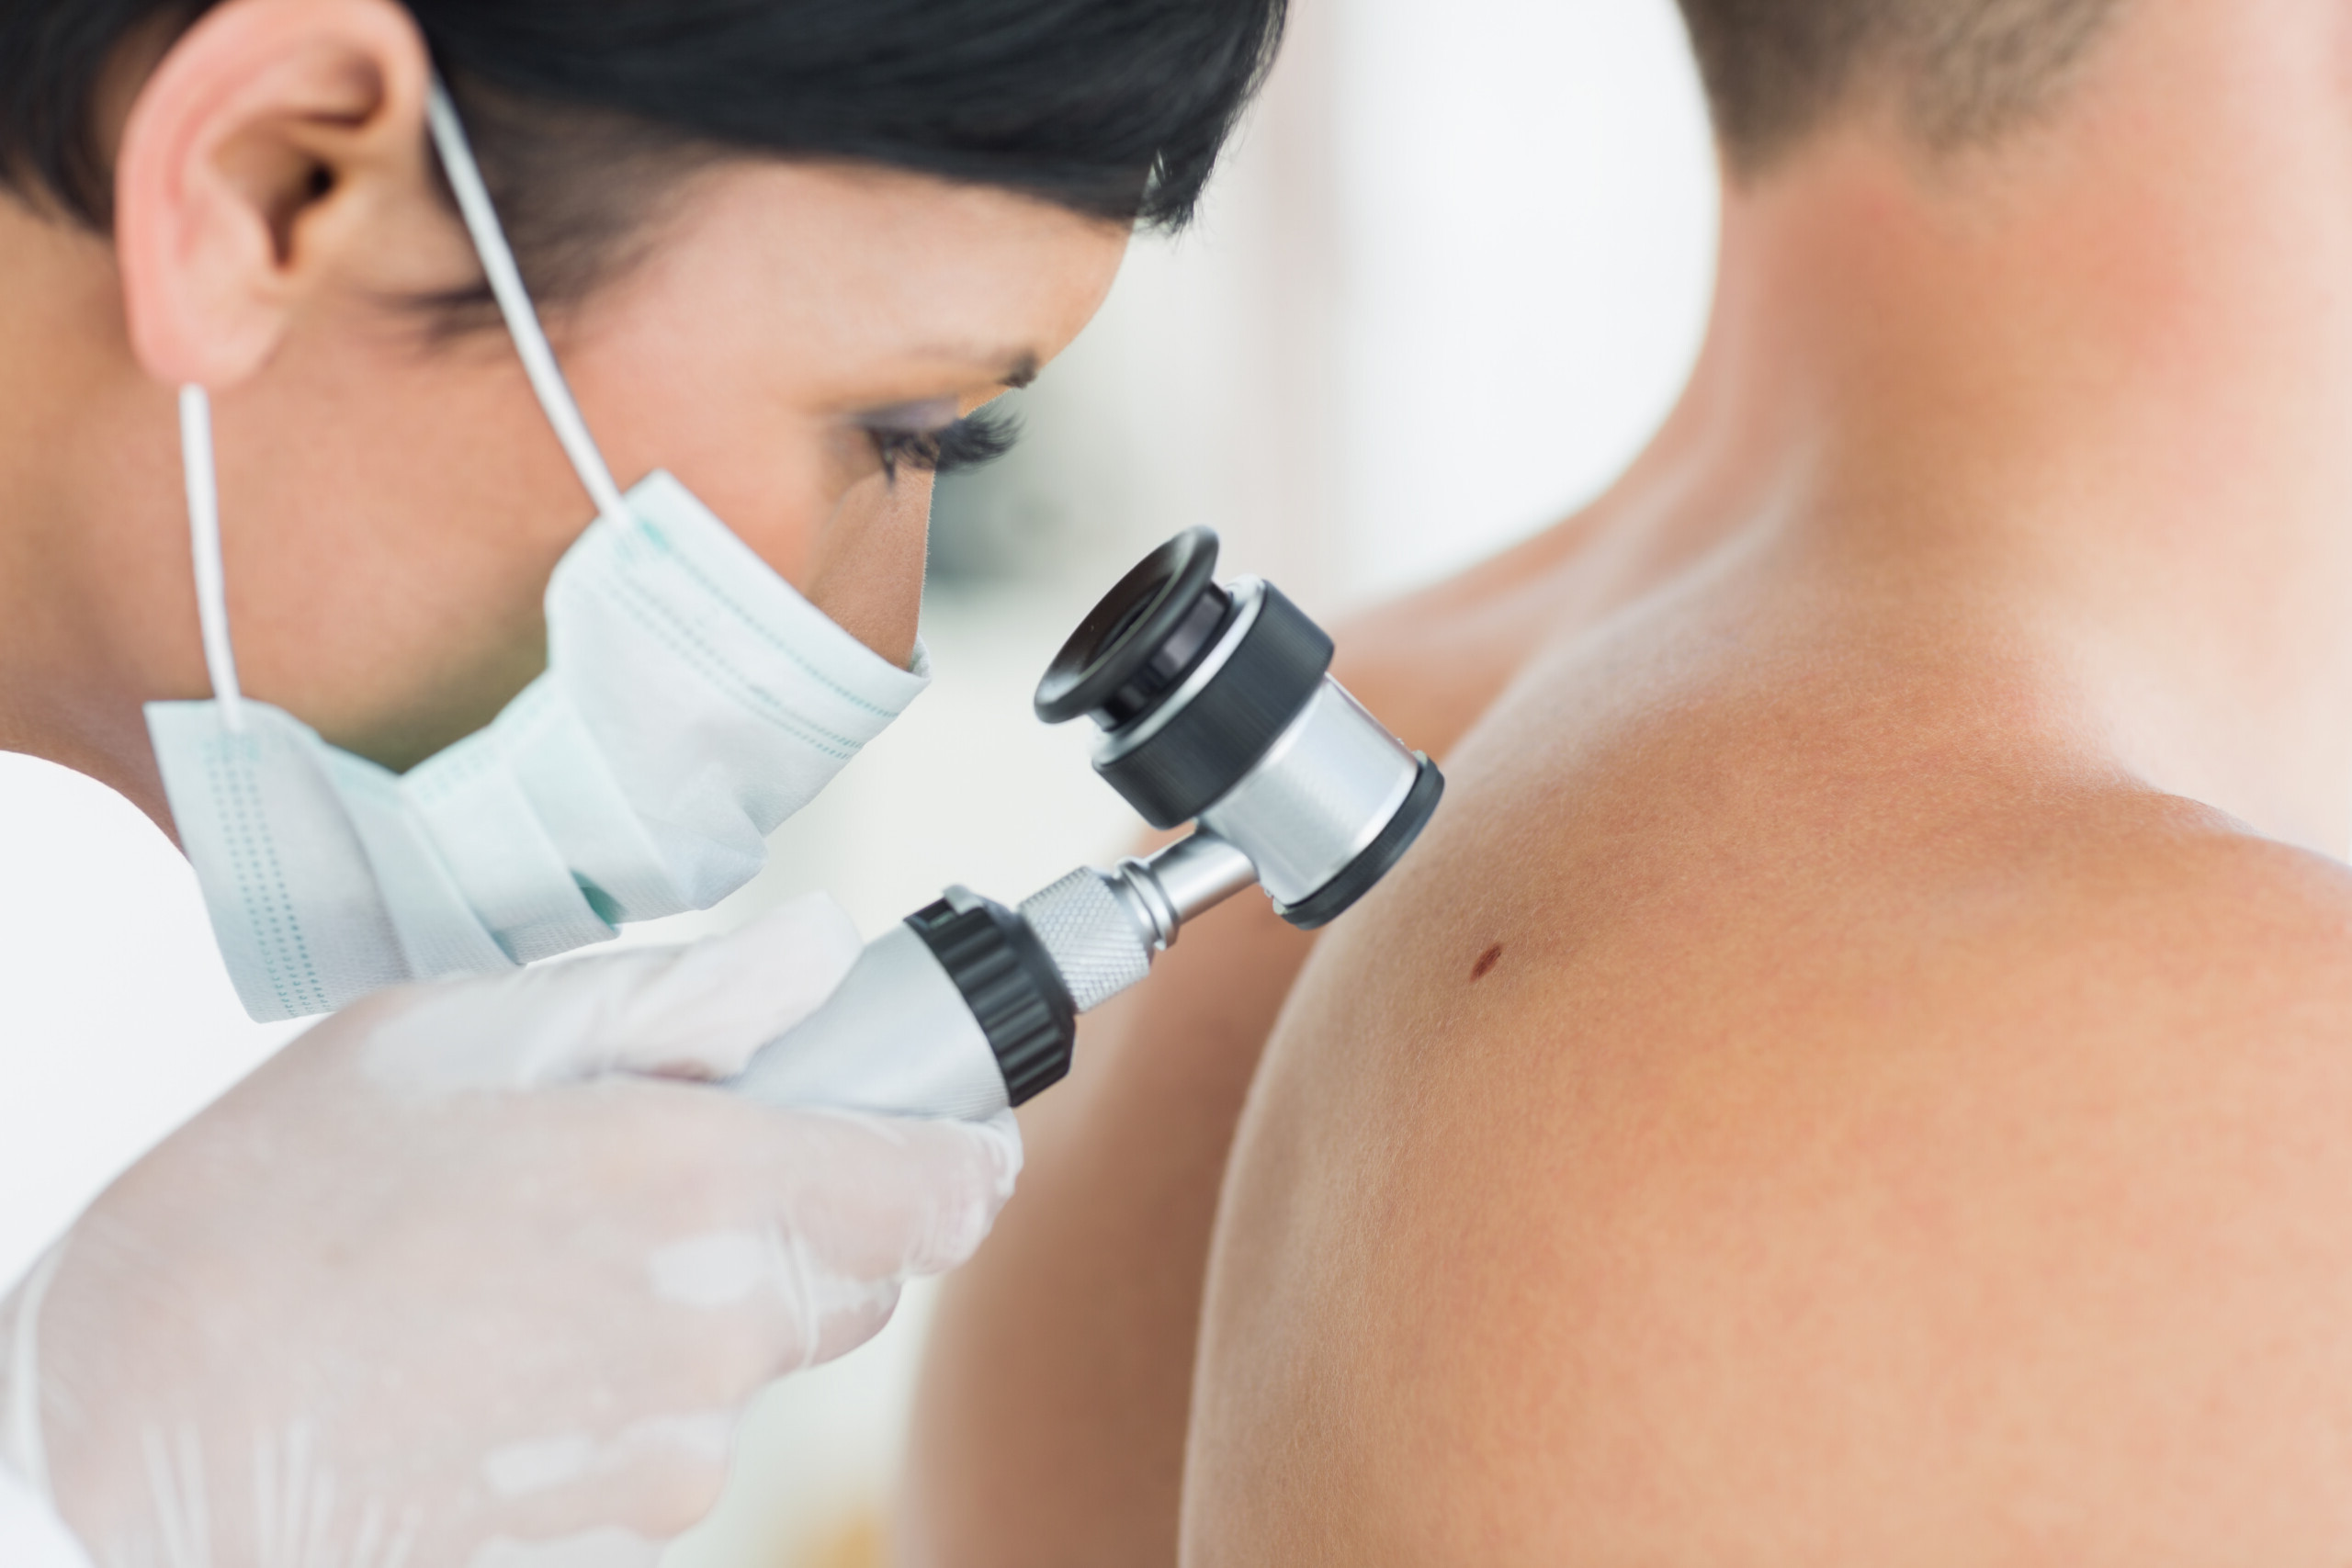 Should Young Adults Be Concerned About Melanoma Screening?